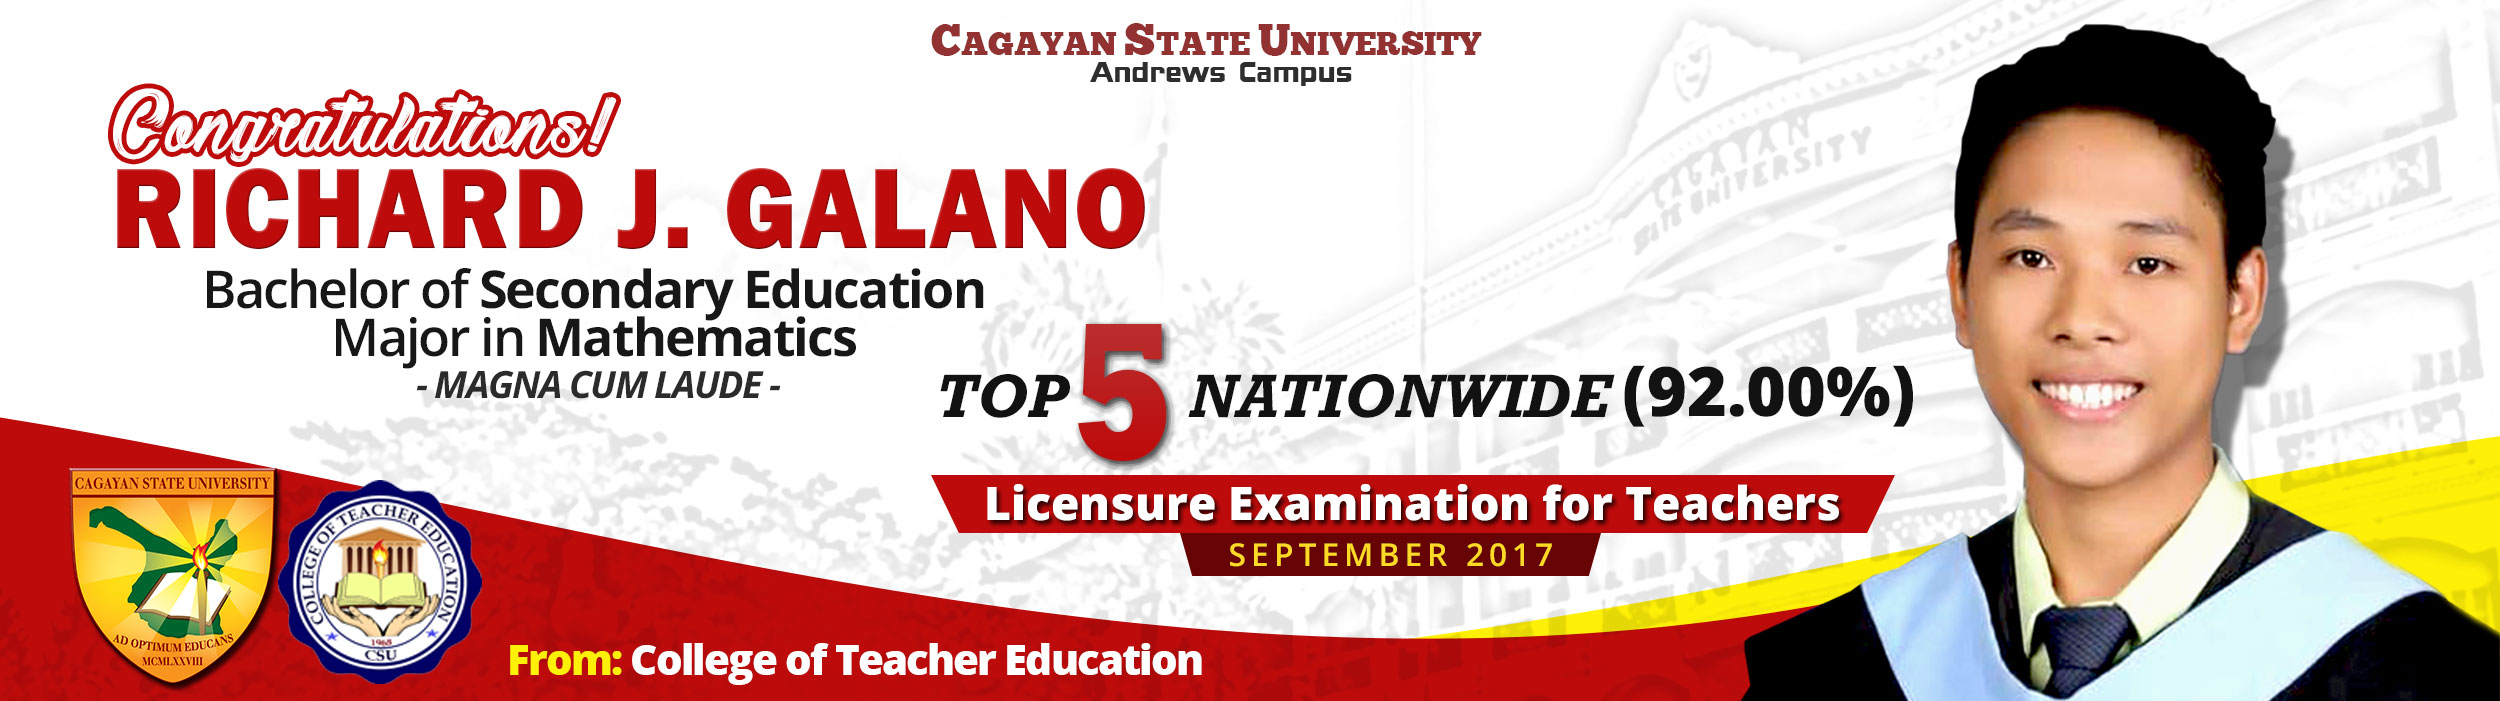 TOP 5 - RICHARD GALANO